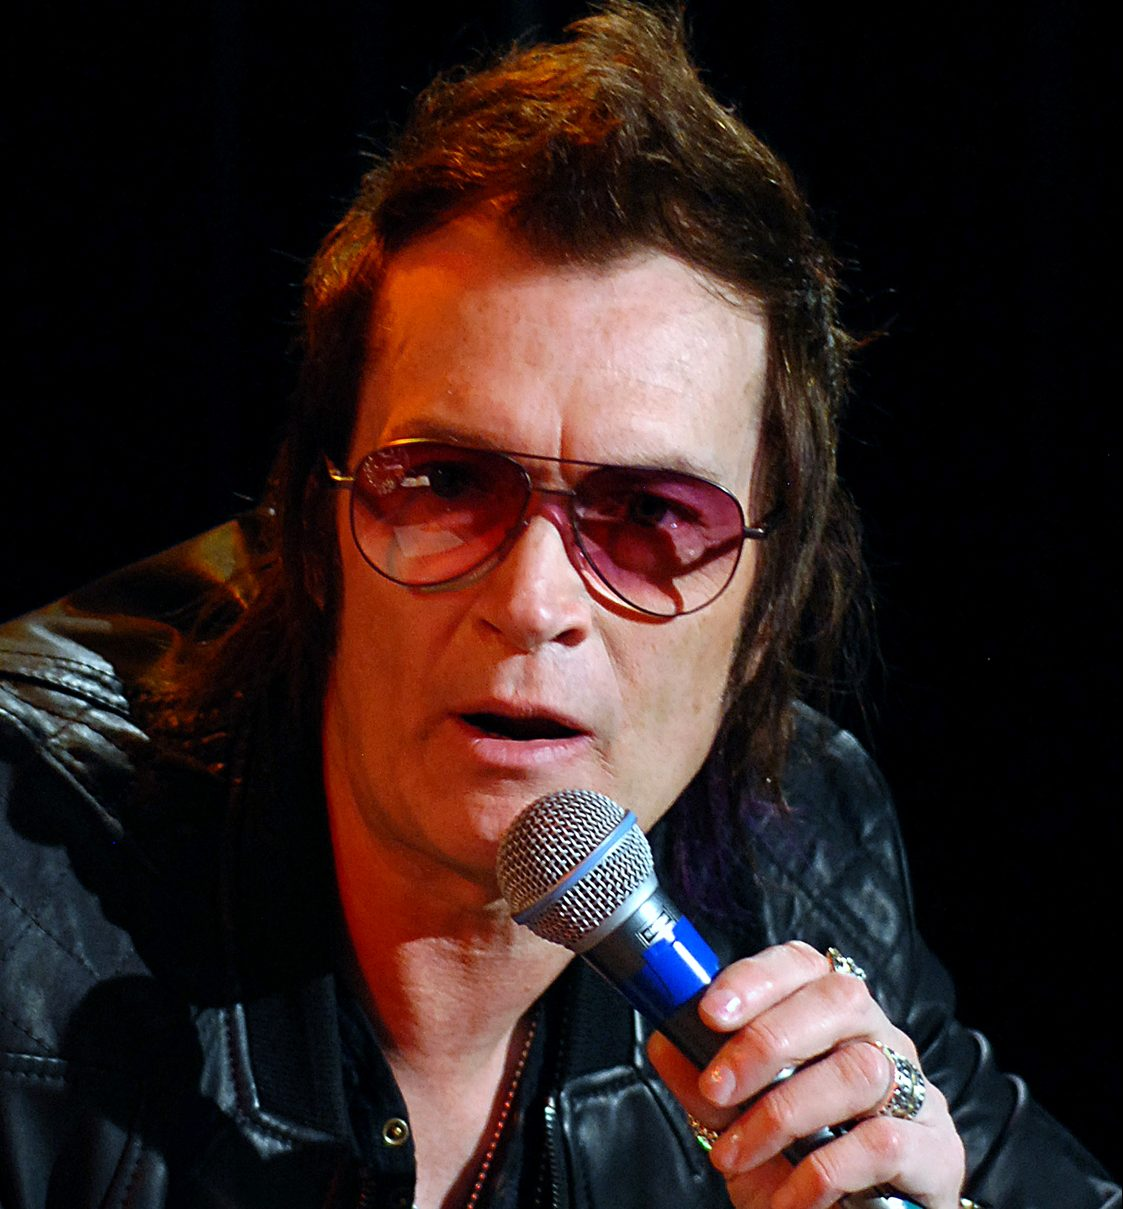 Glenn Hughes 2012 e1581500002569 Just The Facts (20 Of Them) About Dan Aykroyd And Tom Hanks' Dragnet